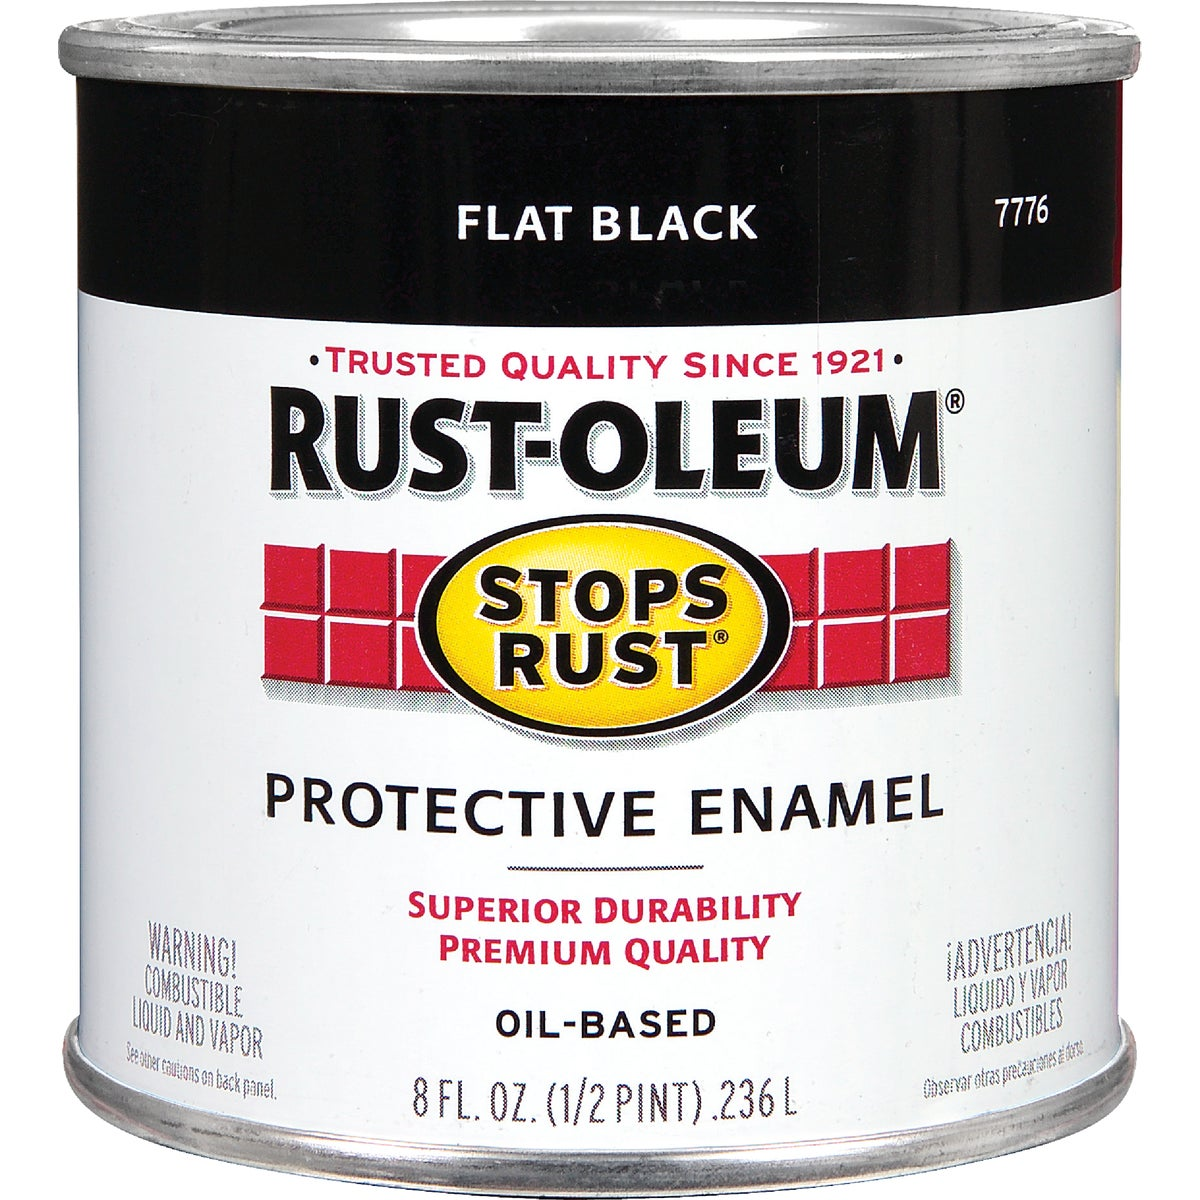 FLAT BLACK ENAMEL - 7776-730 by Rustoleum